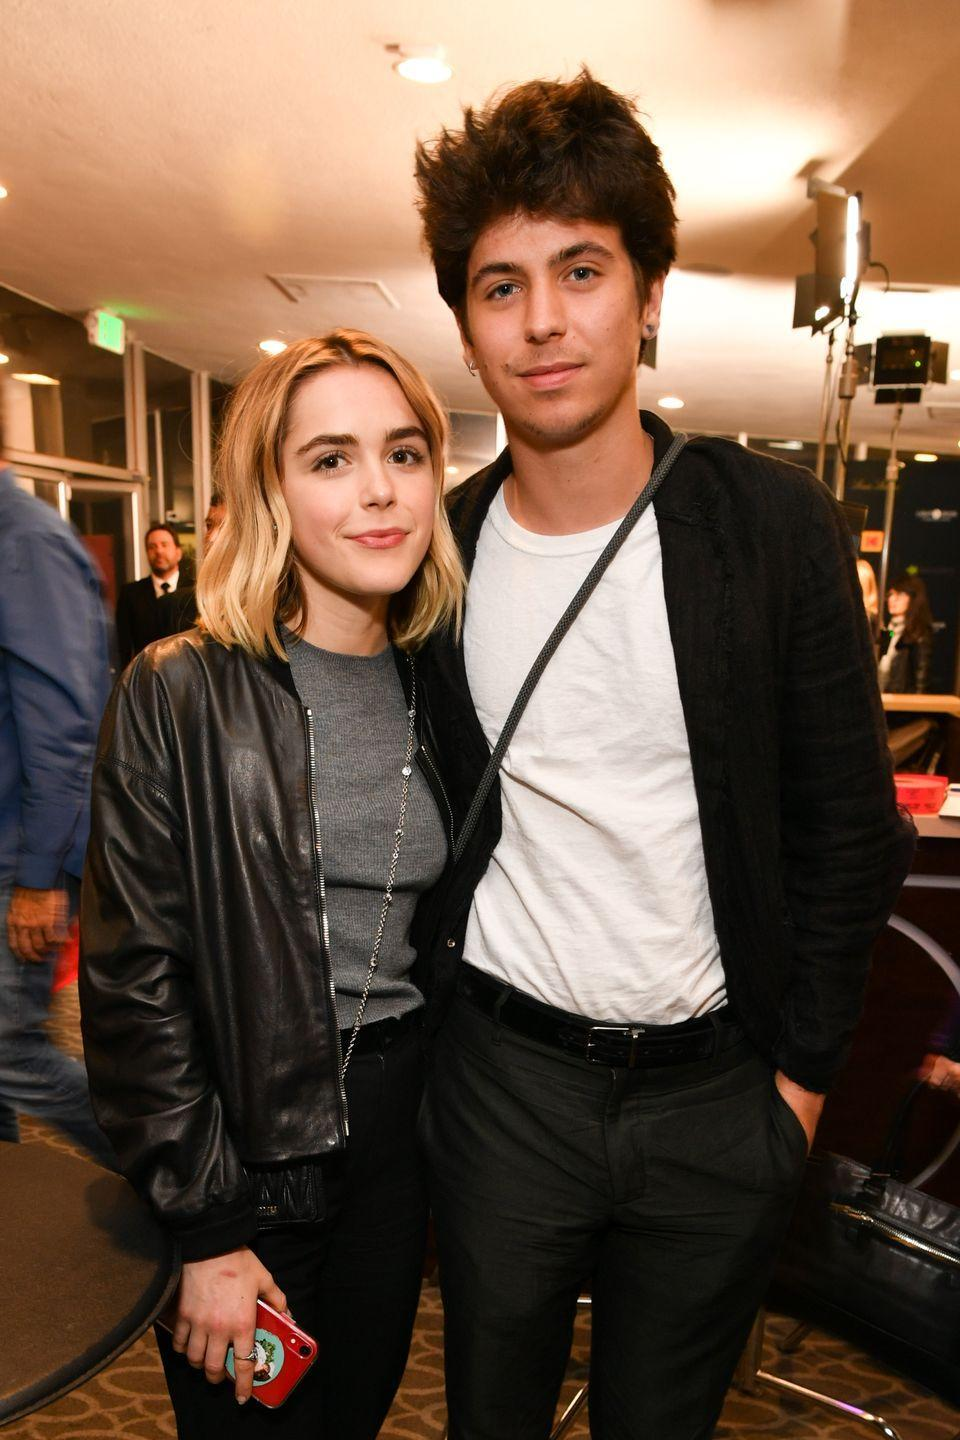 <p><strong>How long they've been together: </strong>The young Hollywood stars haven't been together for long, but already their coy antics surrounding their relationship have people intrigued. They were first linked at Coachella in 2019 and have been spotted together a few times since. </p><p><strong>Why you forgot they're together: </strong>The pair seems perfect together, but they're low-key at events and on social media, which helps keep them under the radar. </p>